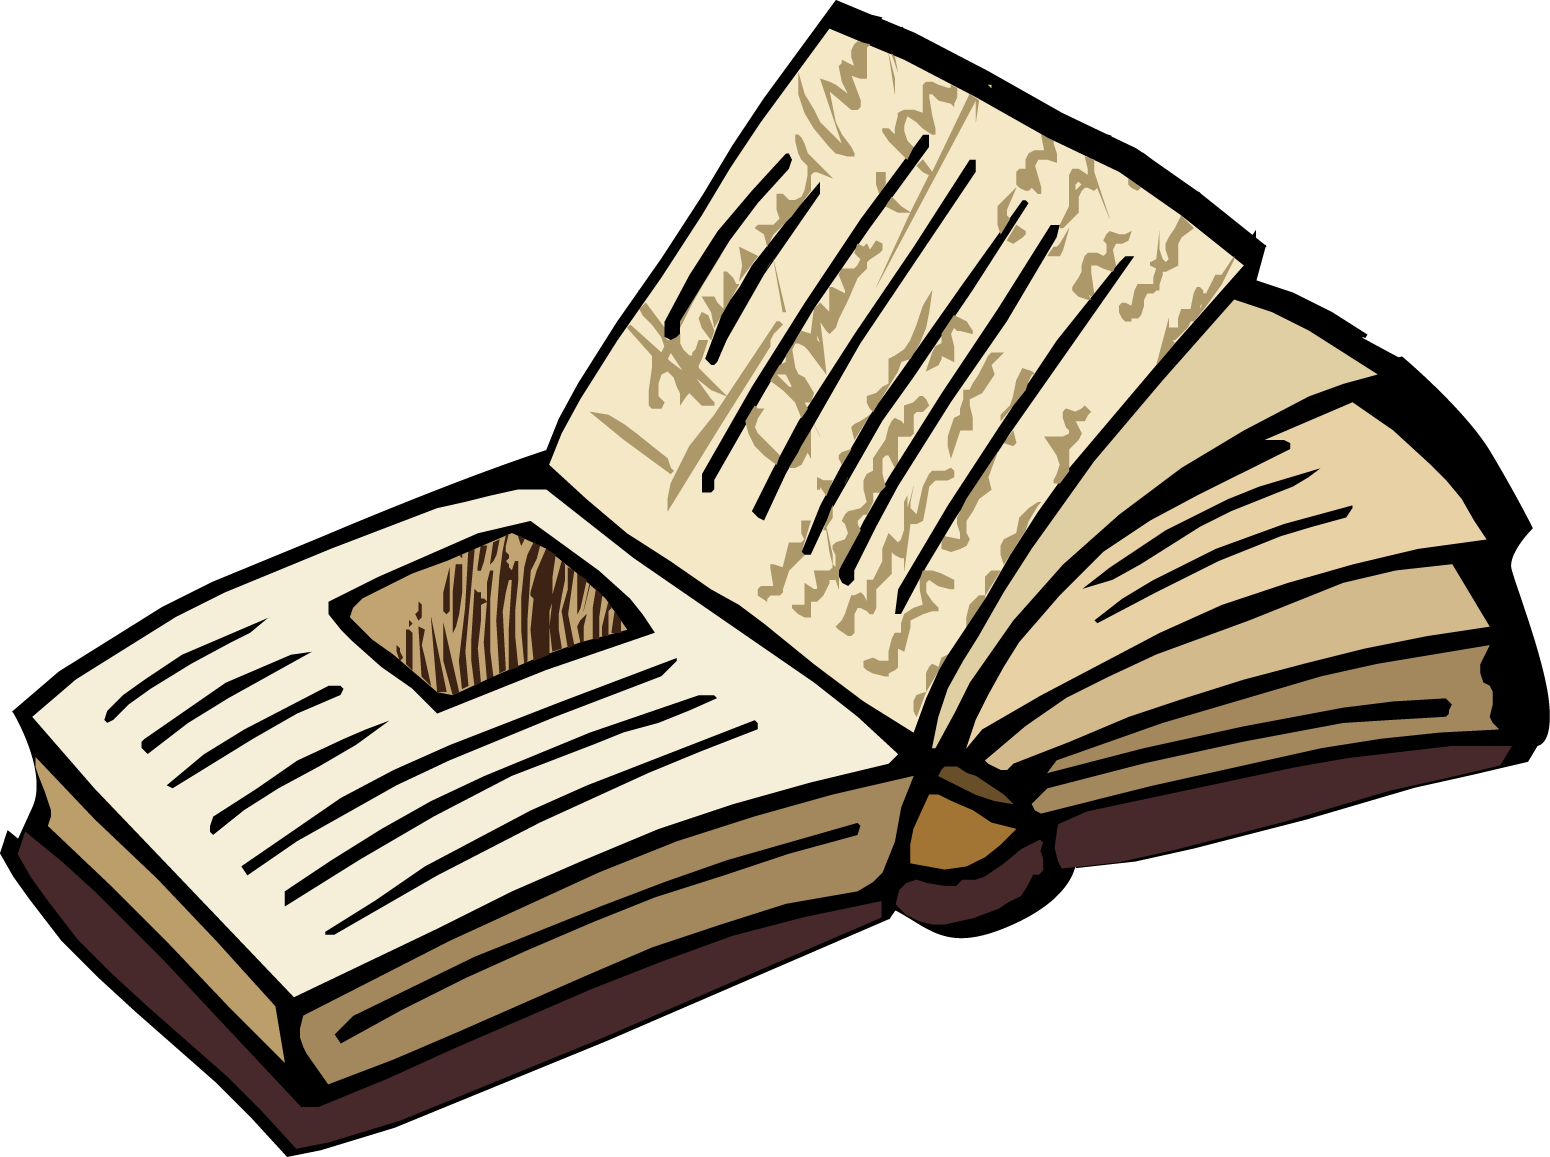 1550x1157 Png History Book Transparent History Book.png Images. Pluspng